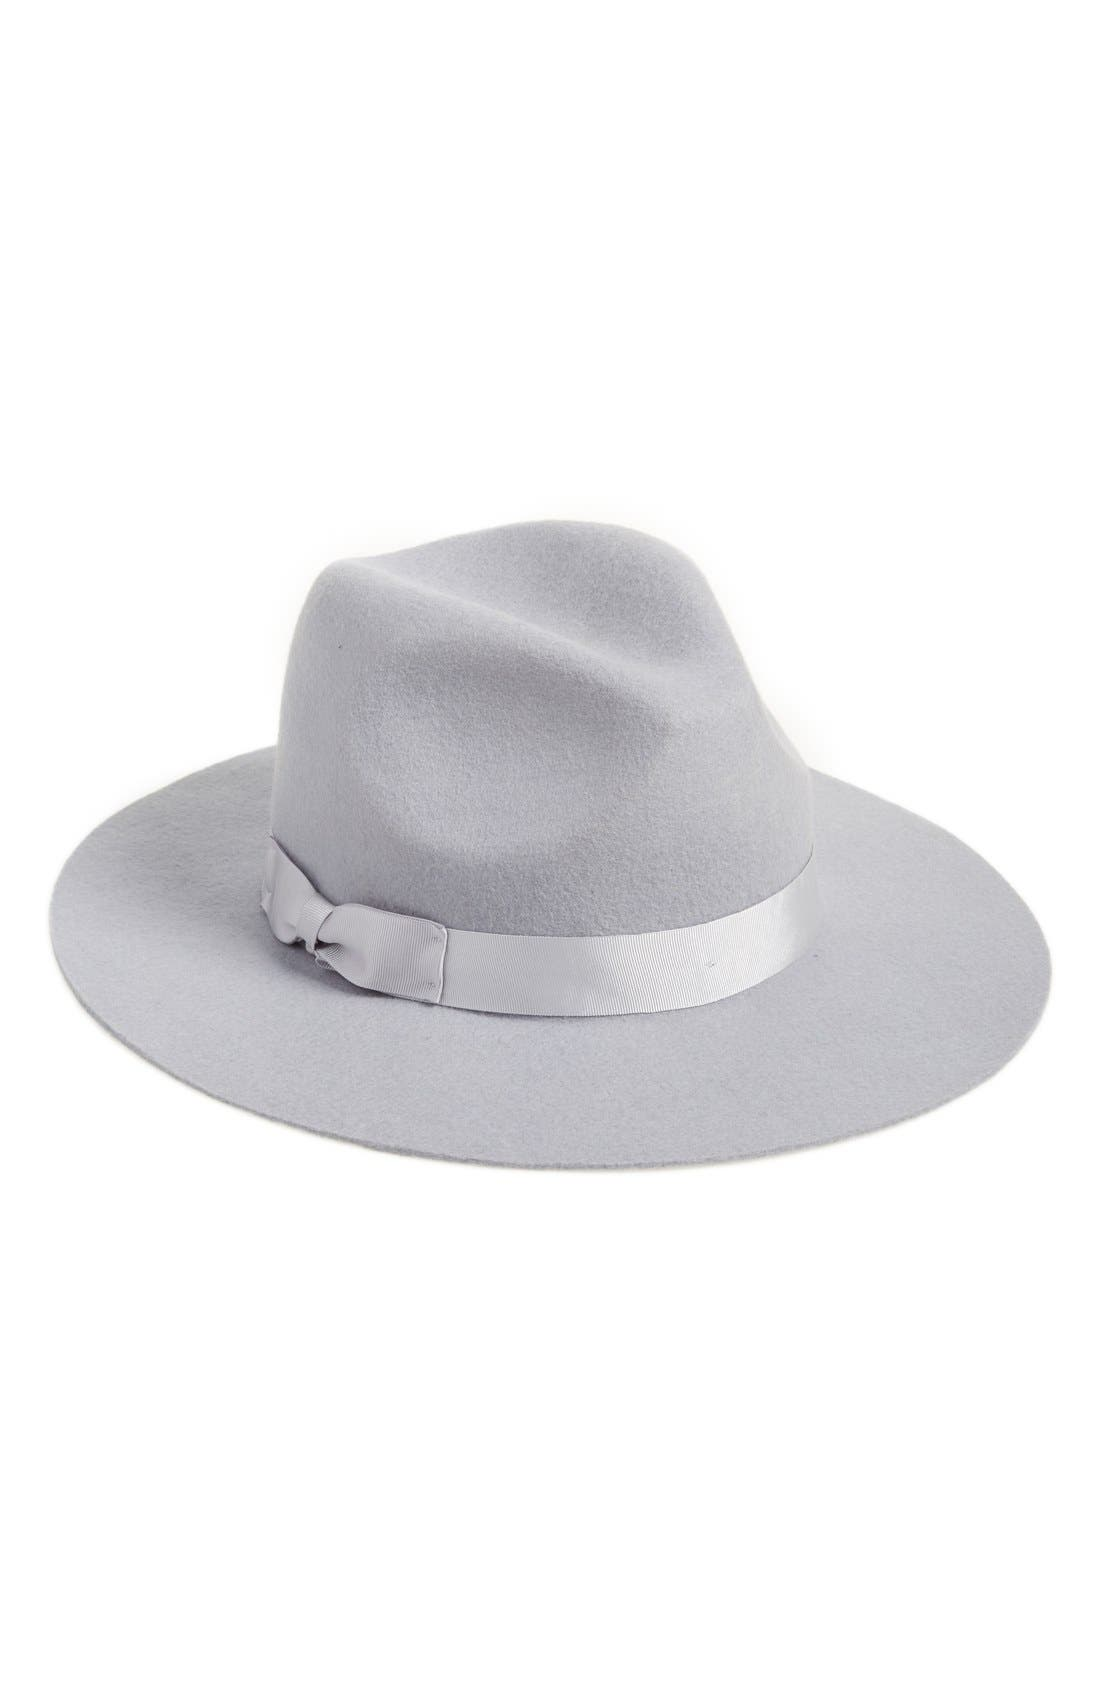 Alternate Image 1 Selected - Lack of Color 'The Silver Haze' Felted Wool Fedora